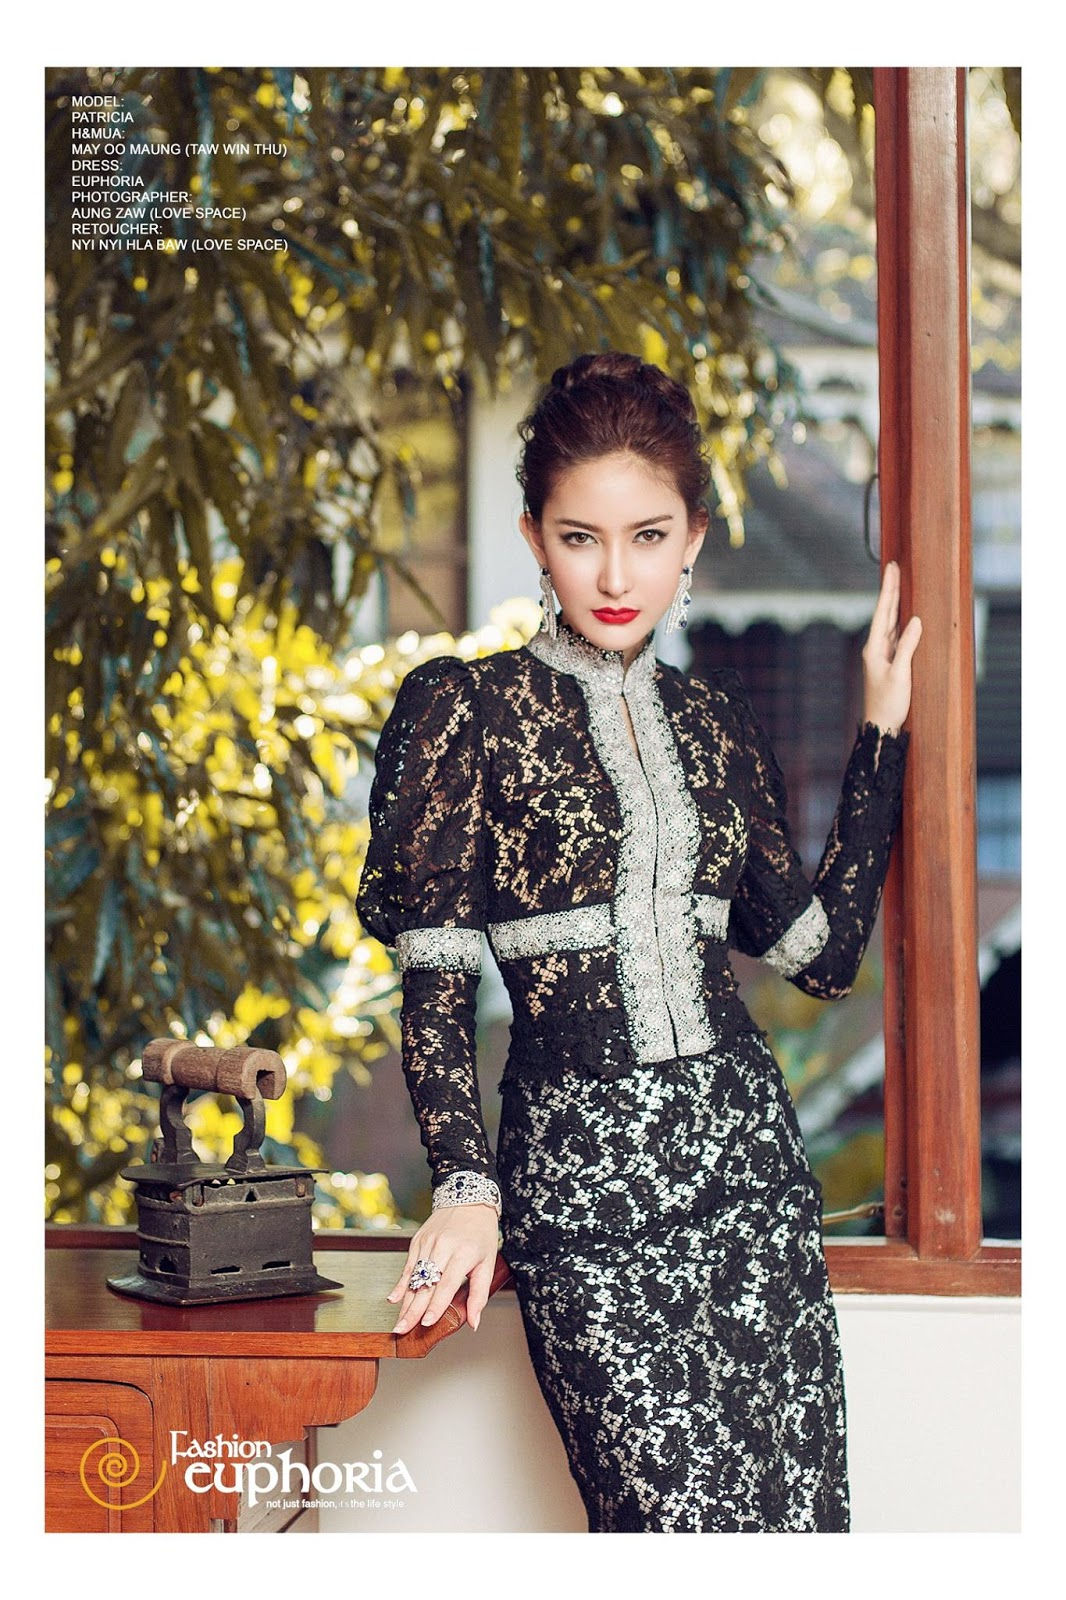 Sue Sha Naing Features Fashion Euphoria